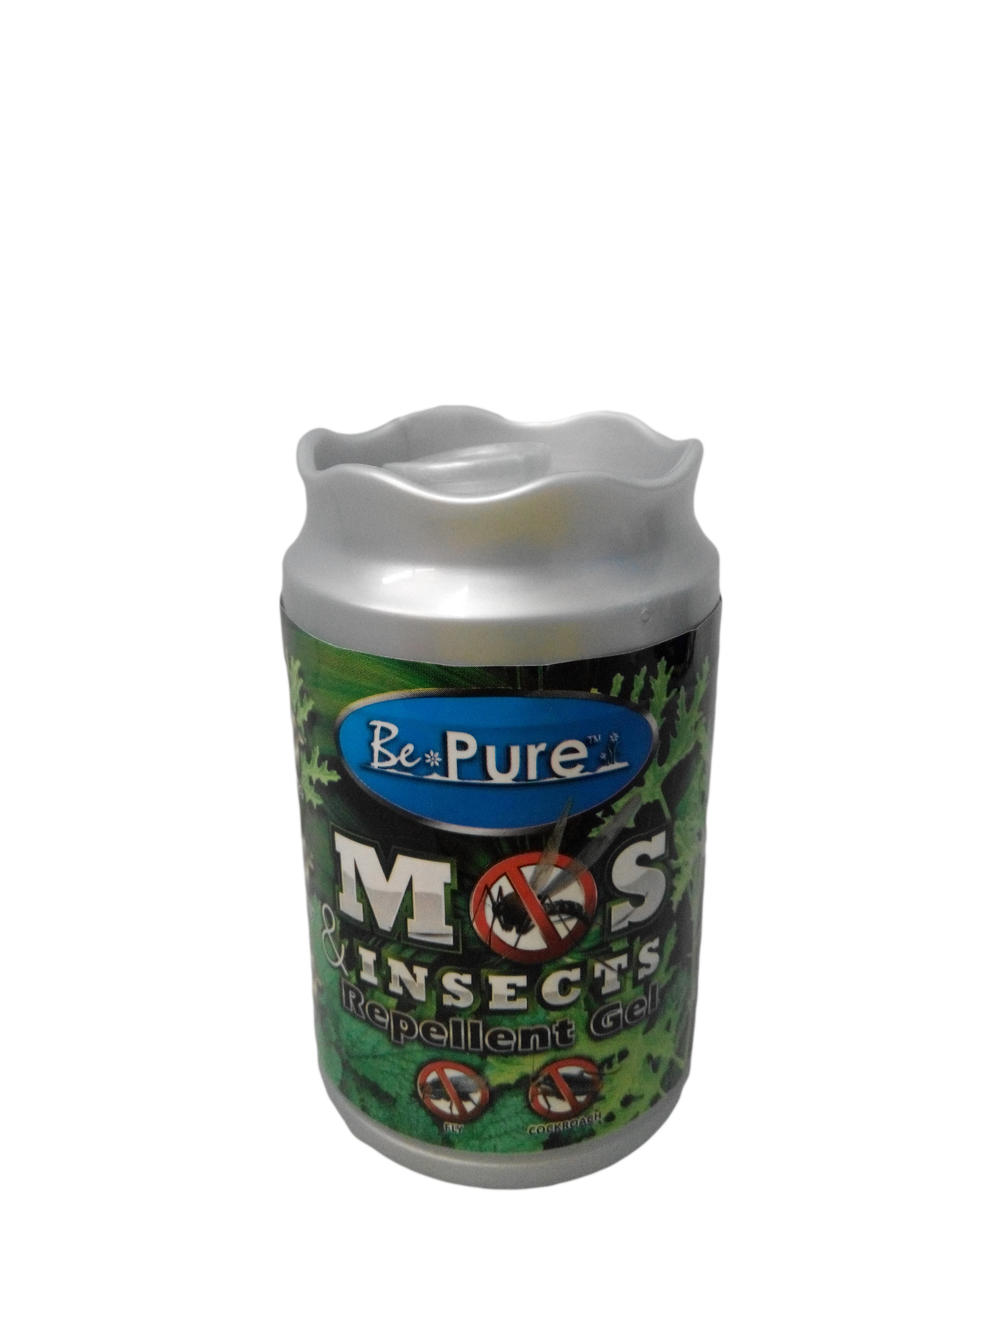 BE PURE Mosquitoes, Cockroaches And Insects Repellent Gel Lemon Grass Scents